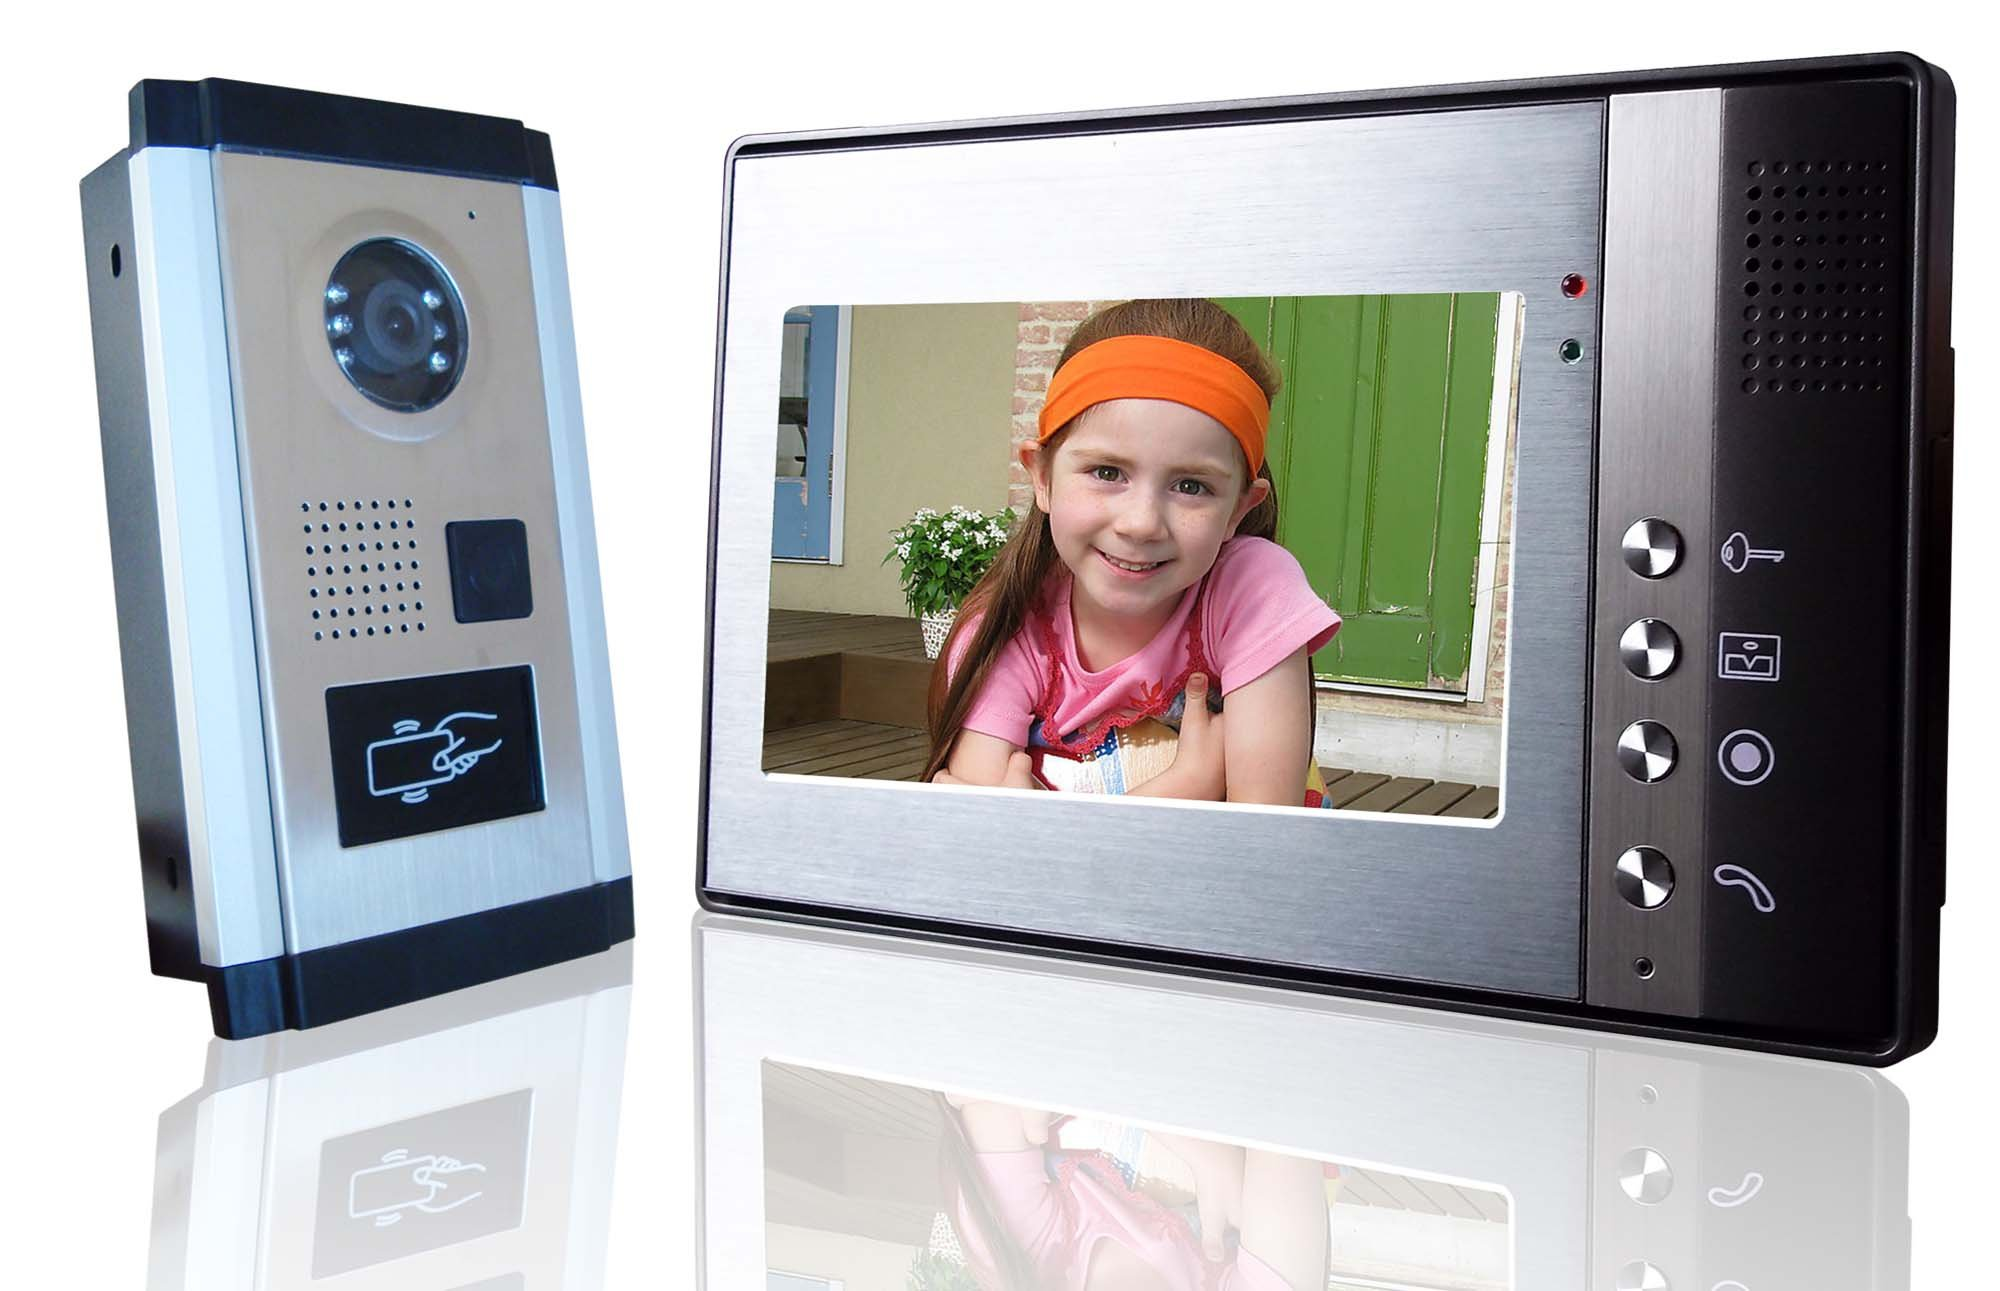 Video door-phone (also known as video door entry or video intercom) is a stand-alone intercom system used to manage calls made at the entrance to a building (residential complex, detached family home, workplace, etc.) with access controlled by audiovisual communication between the inside and outside. The main feature of video door entry is that it enables the person indoors to identify the visitor and, if (and only if) they wish, engage in conversation and/or open the door to allow access to the person calling.